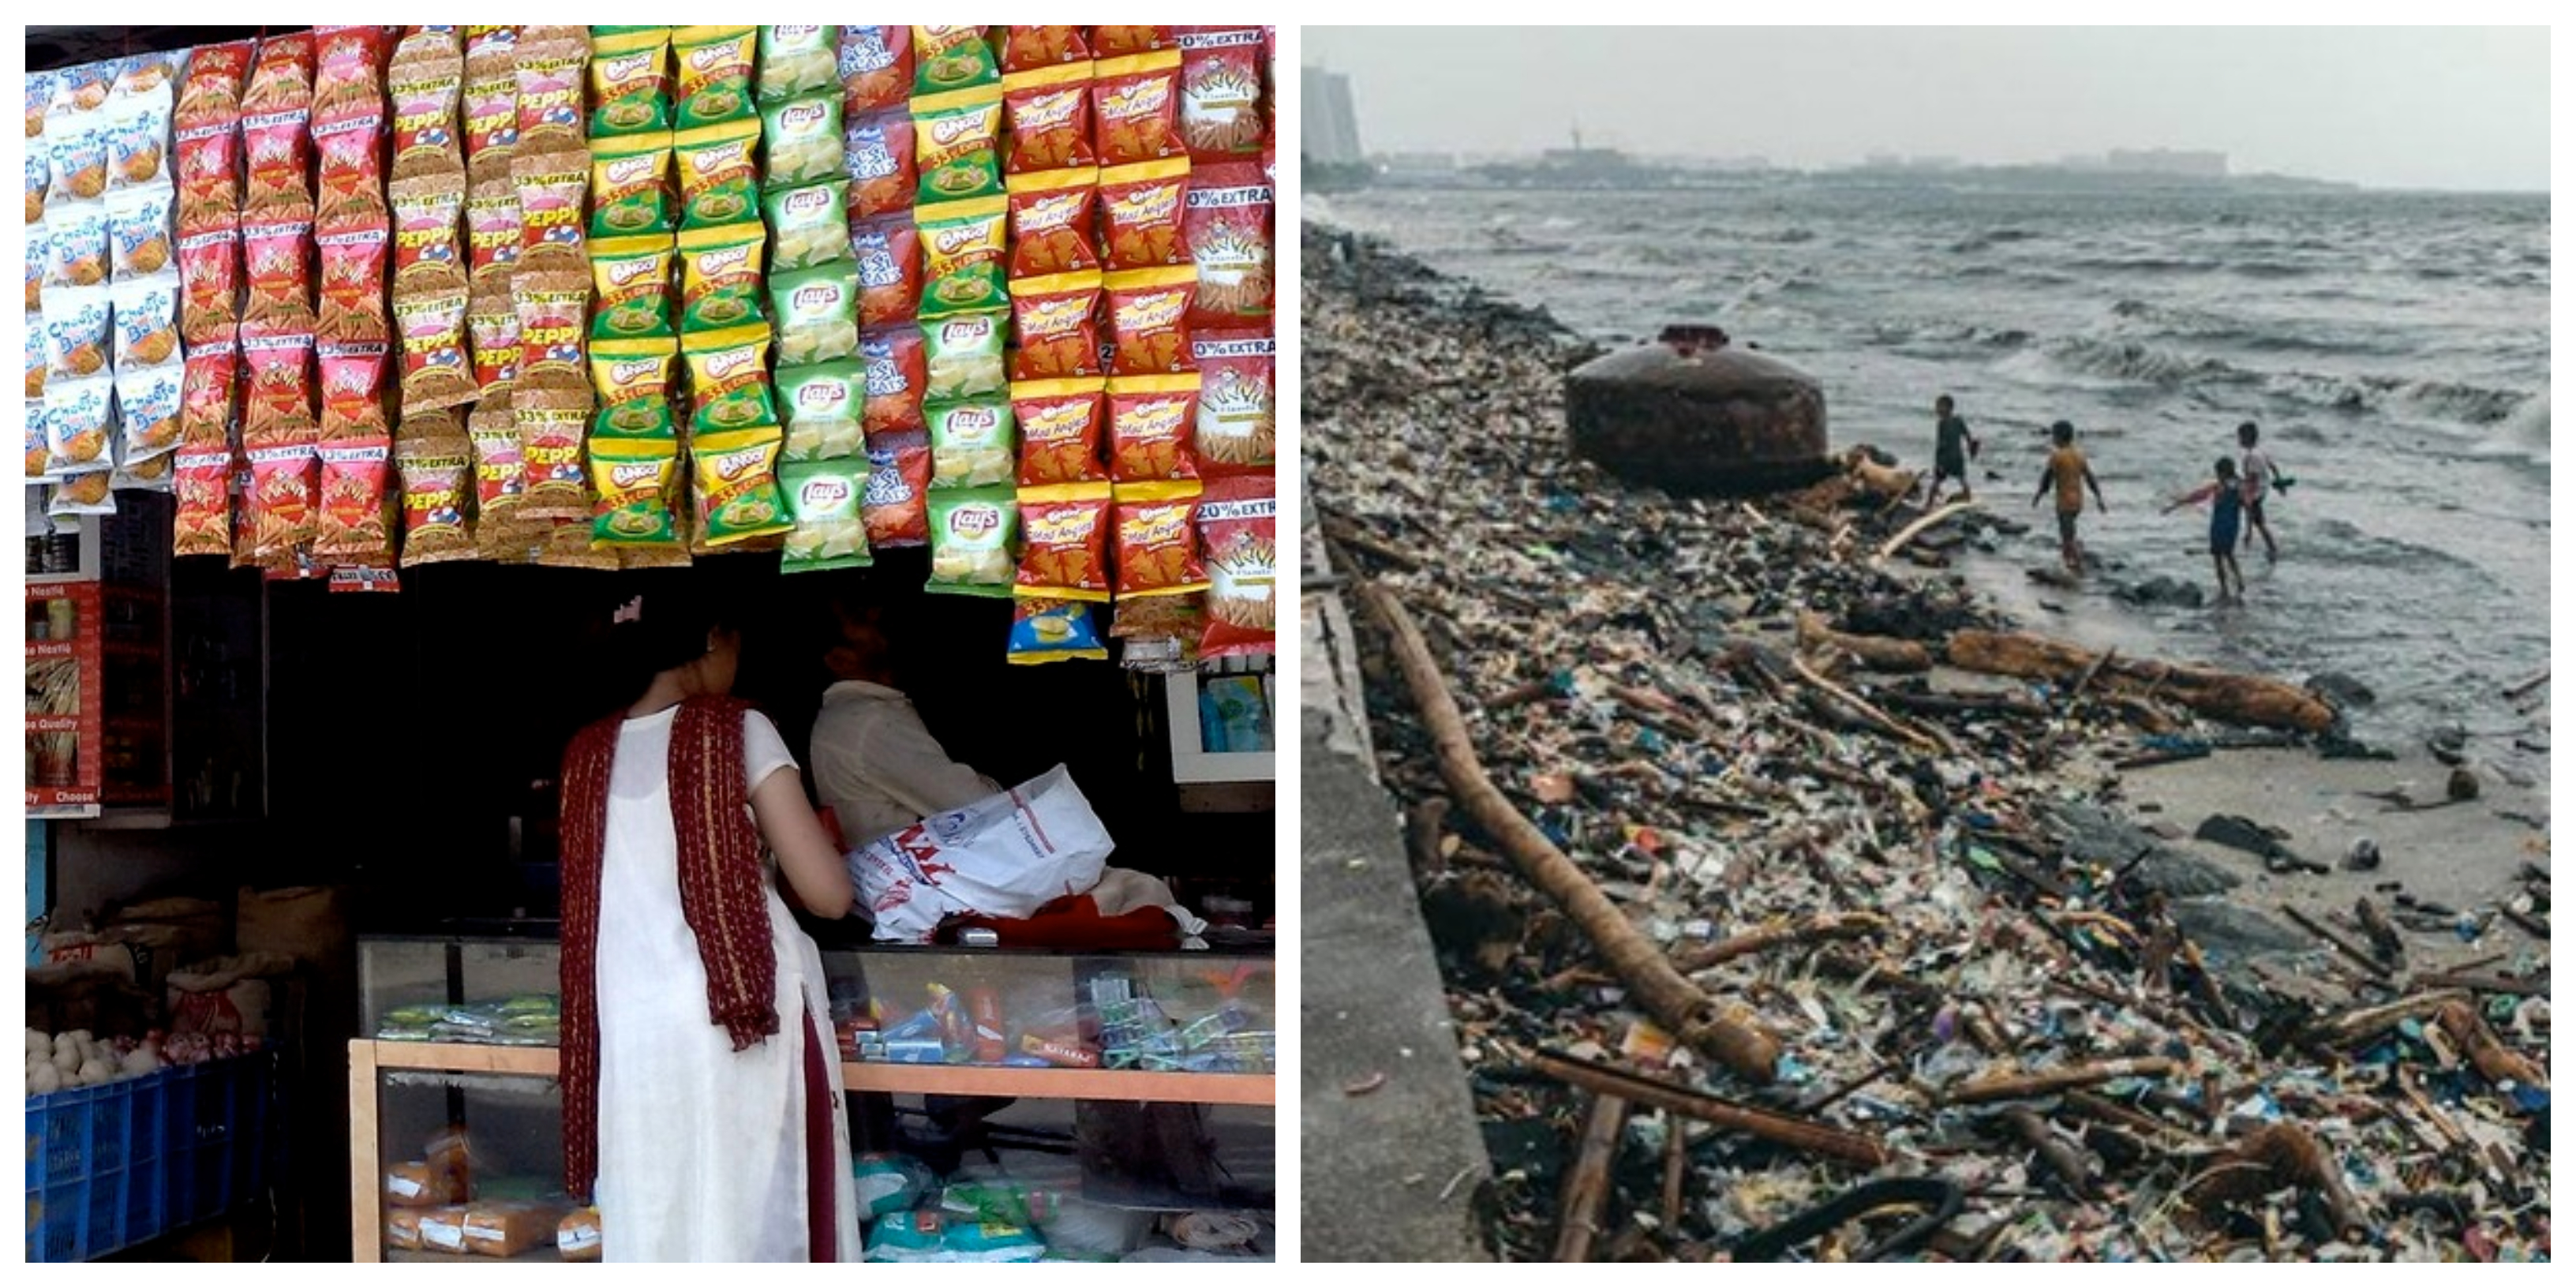 Plastic waste pollution in the Philippines